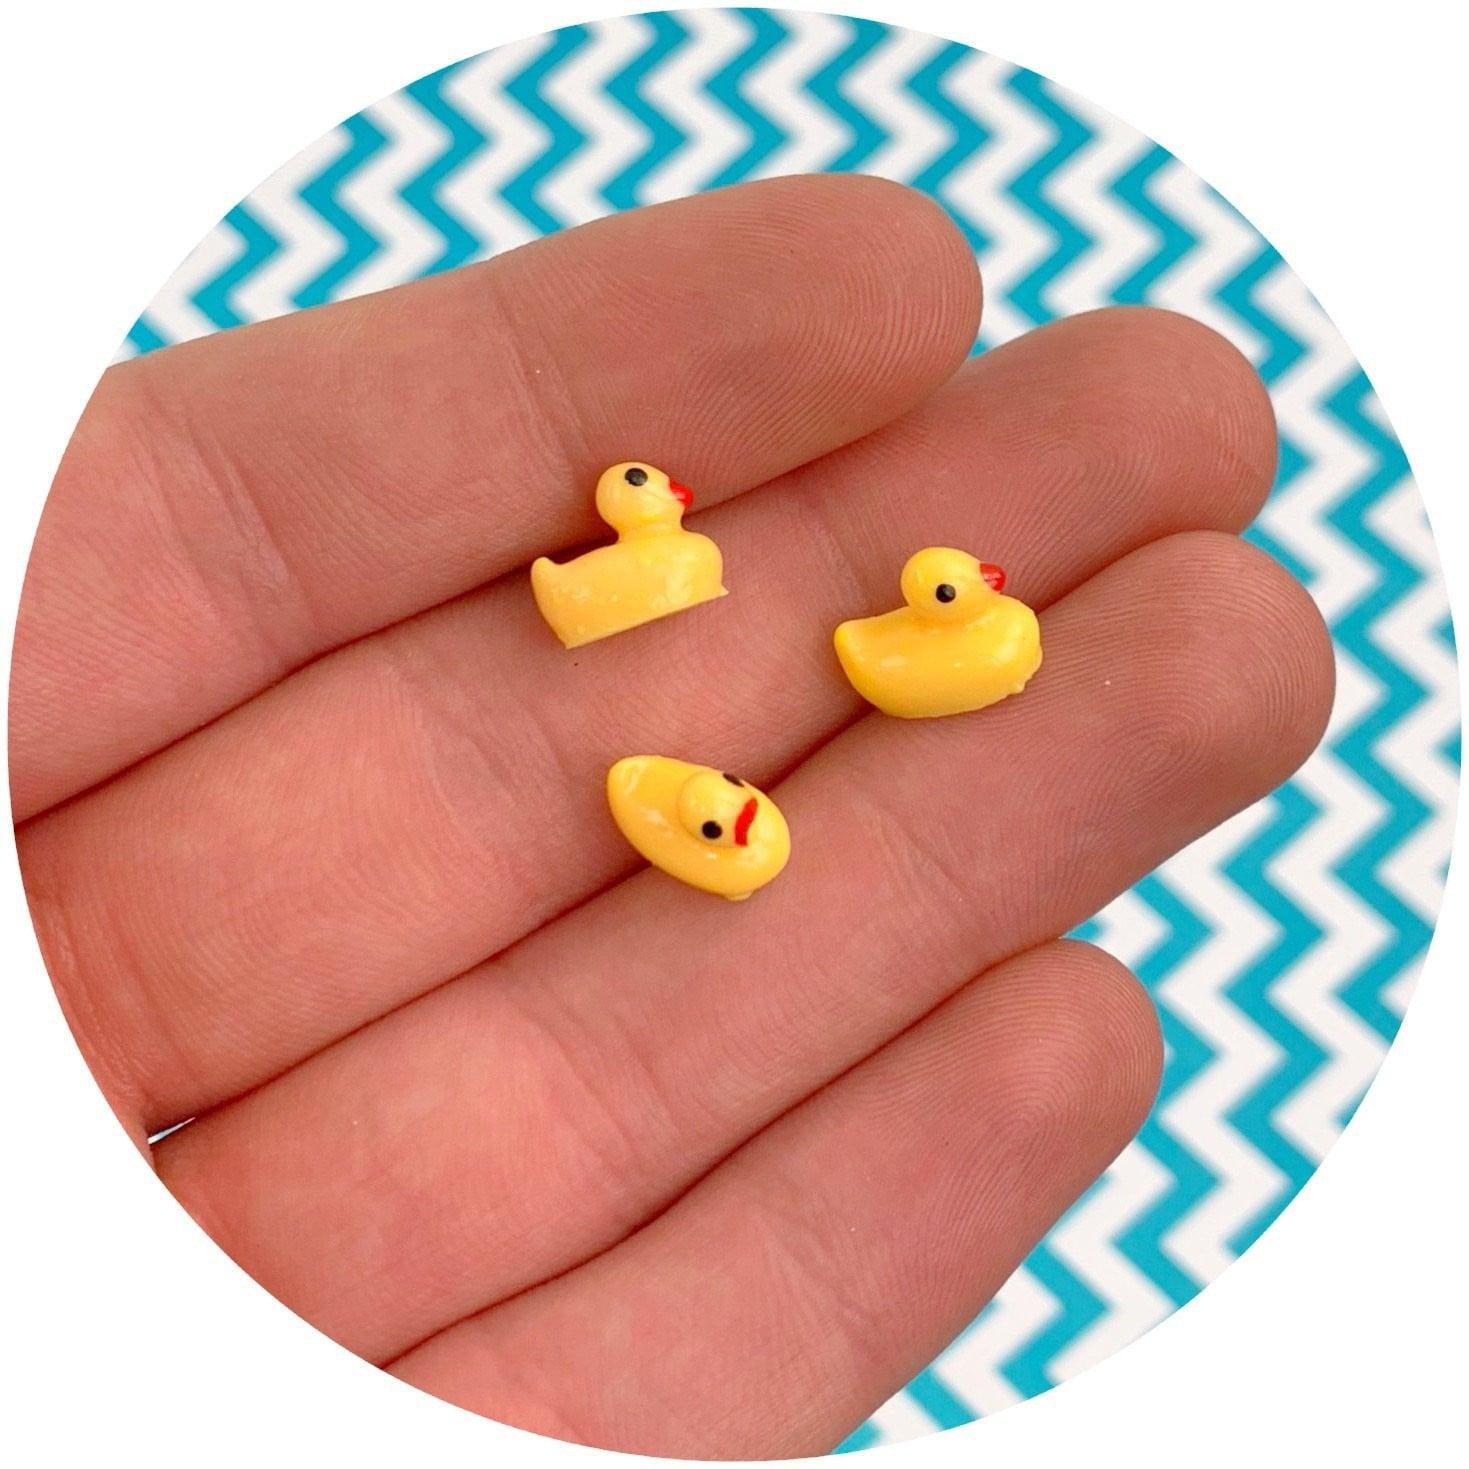 Baby Duck Charm - Fimo Slices - Dope Slimes LLC - Dope Slimes LLC